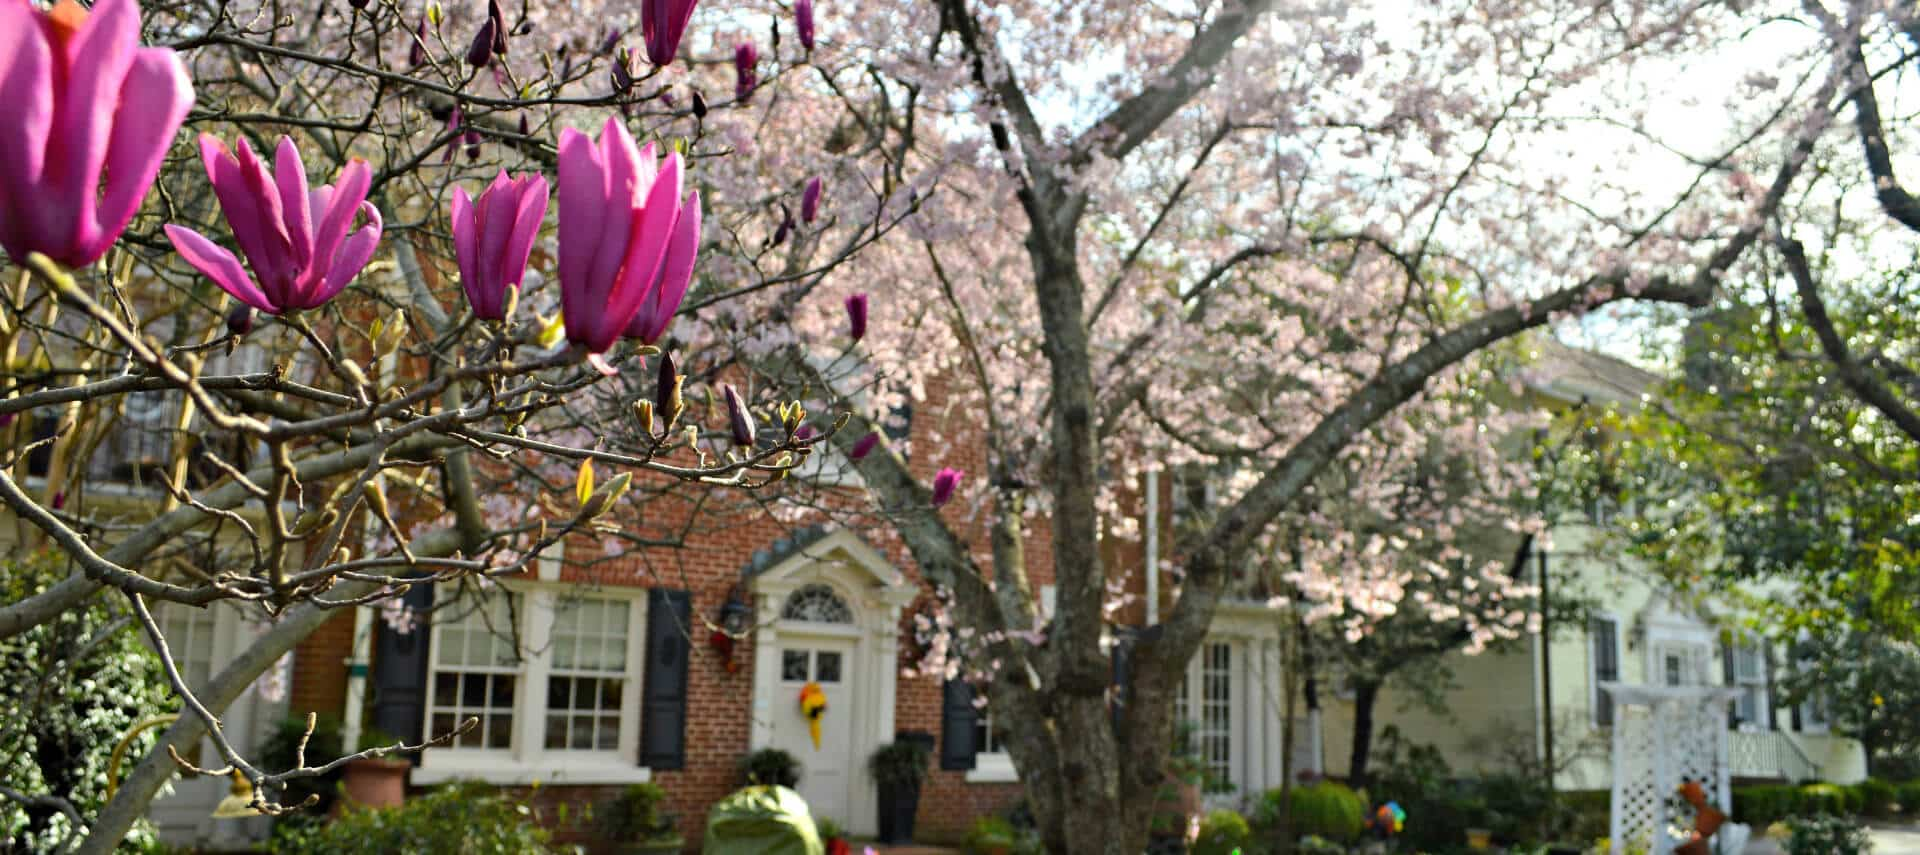 Large brick home fronted by tree blooming with pink flowers.